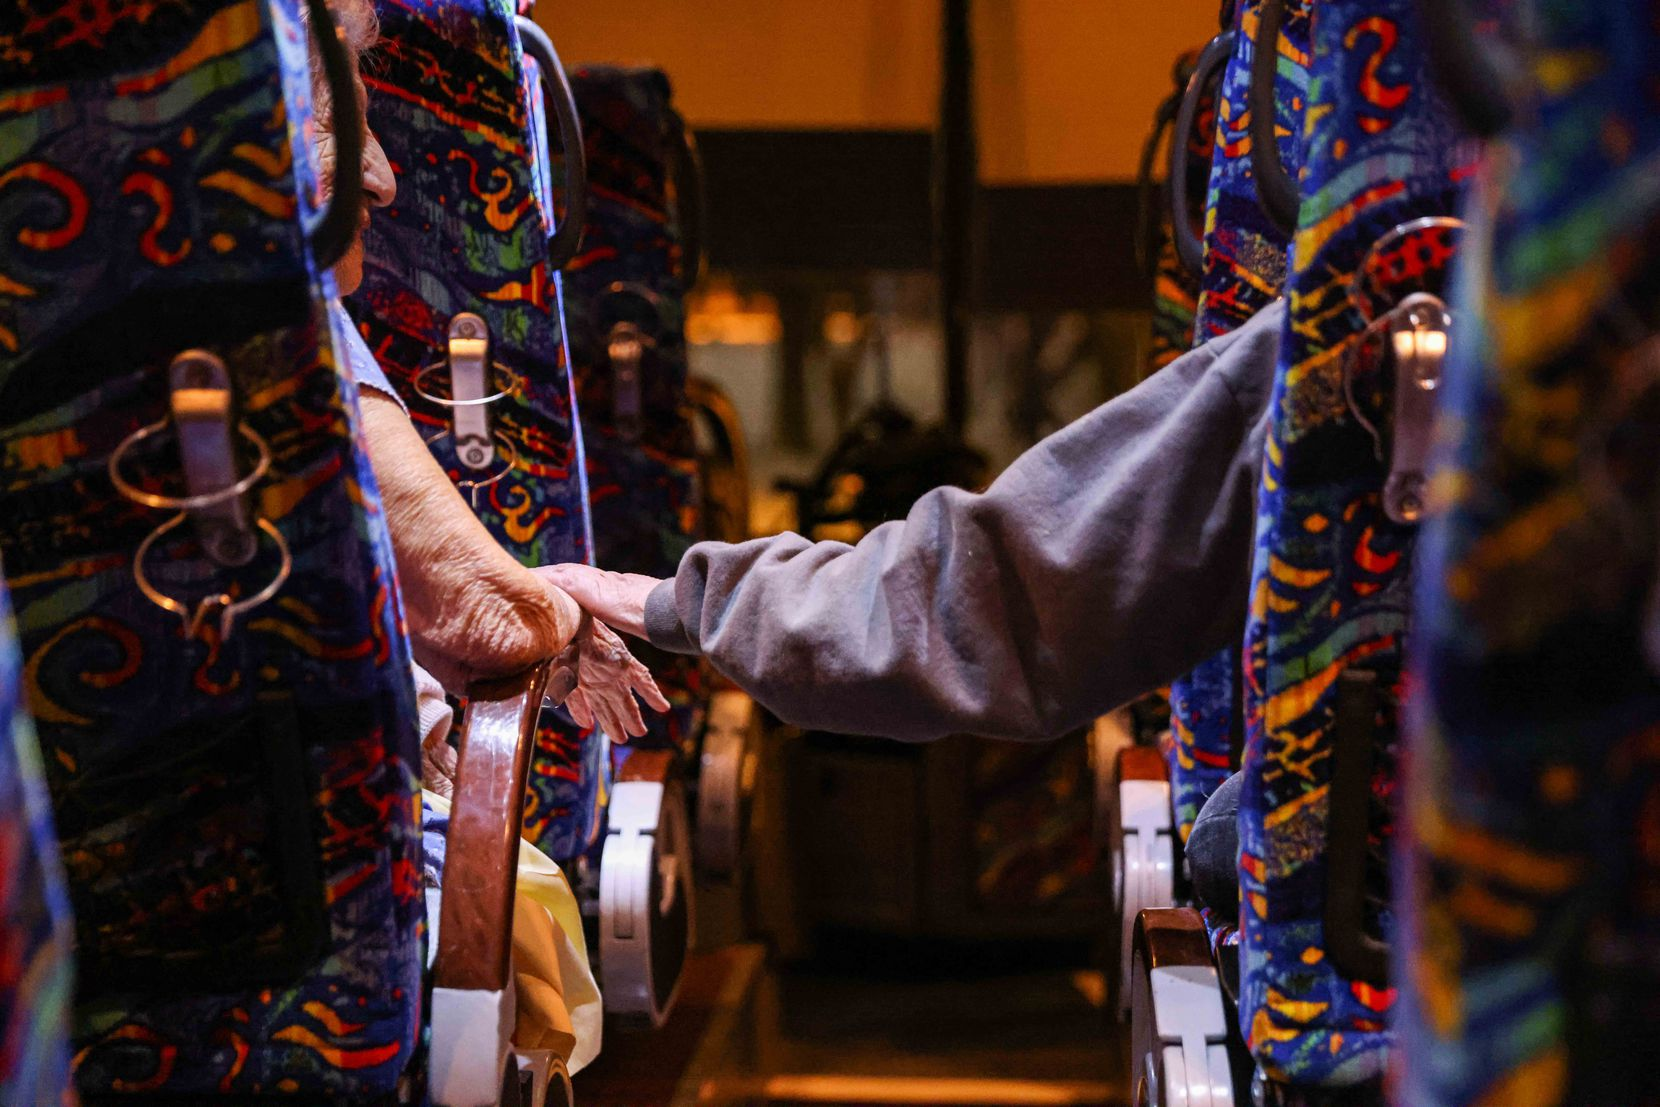 Gloria Sanders, 76, reaches for her mother's arm, Maria Barajas, 100, as it rests on the armrest of her seat to try to calm her down as they prepare to spend the night on a charter bus that served as a warming center at the Pleasant Oaks Recreation Center on Wednesday, February 18, 2021.